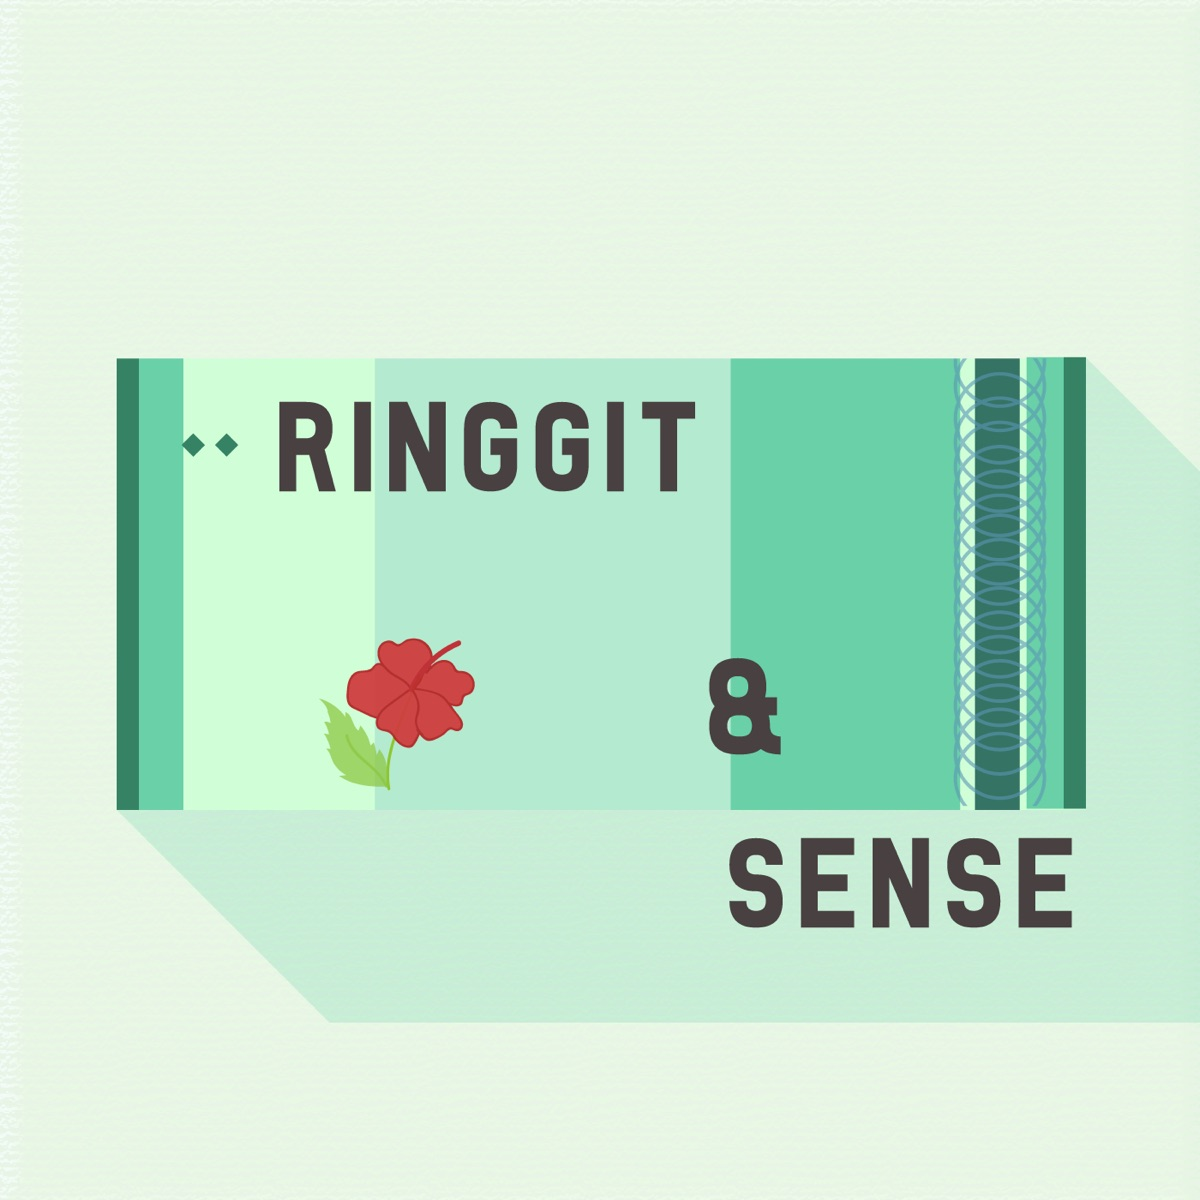 BFM :: Ringgit and Sense